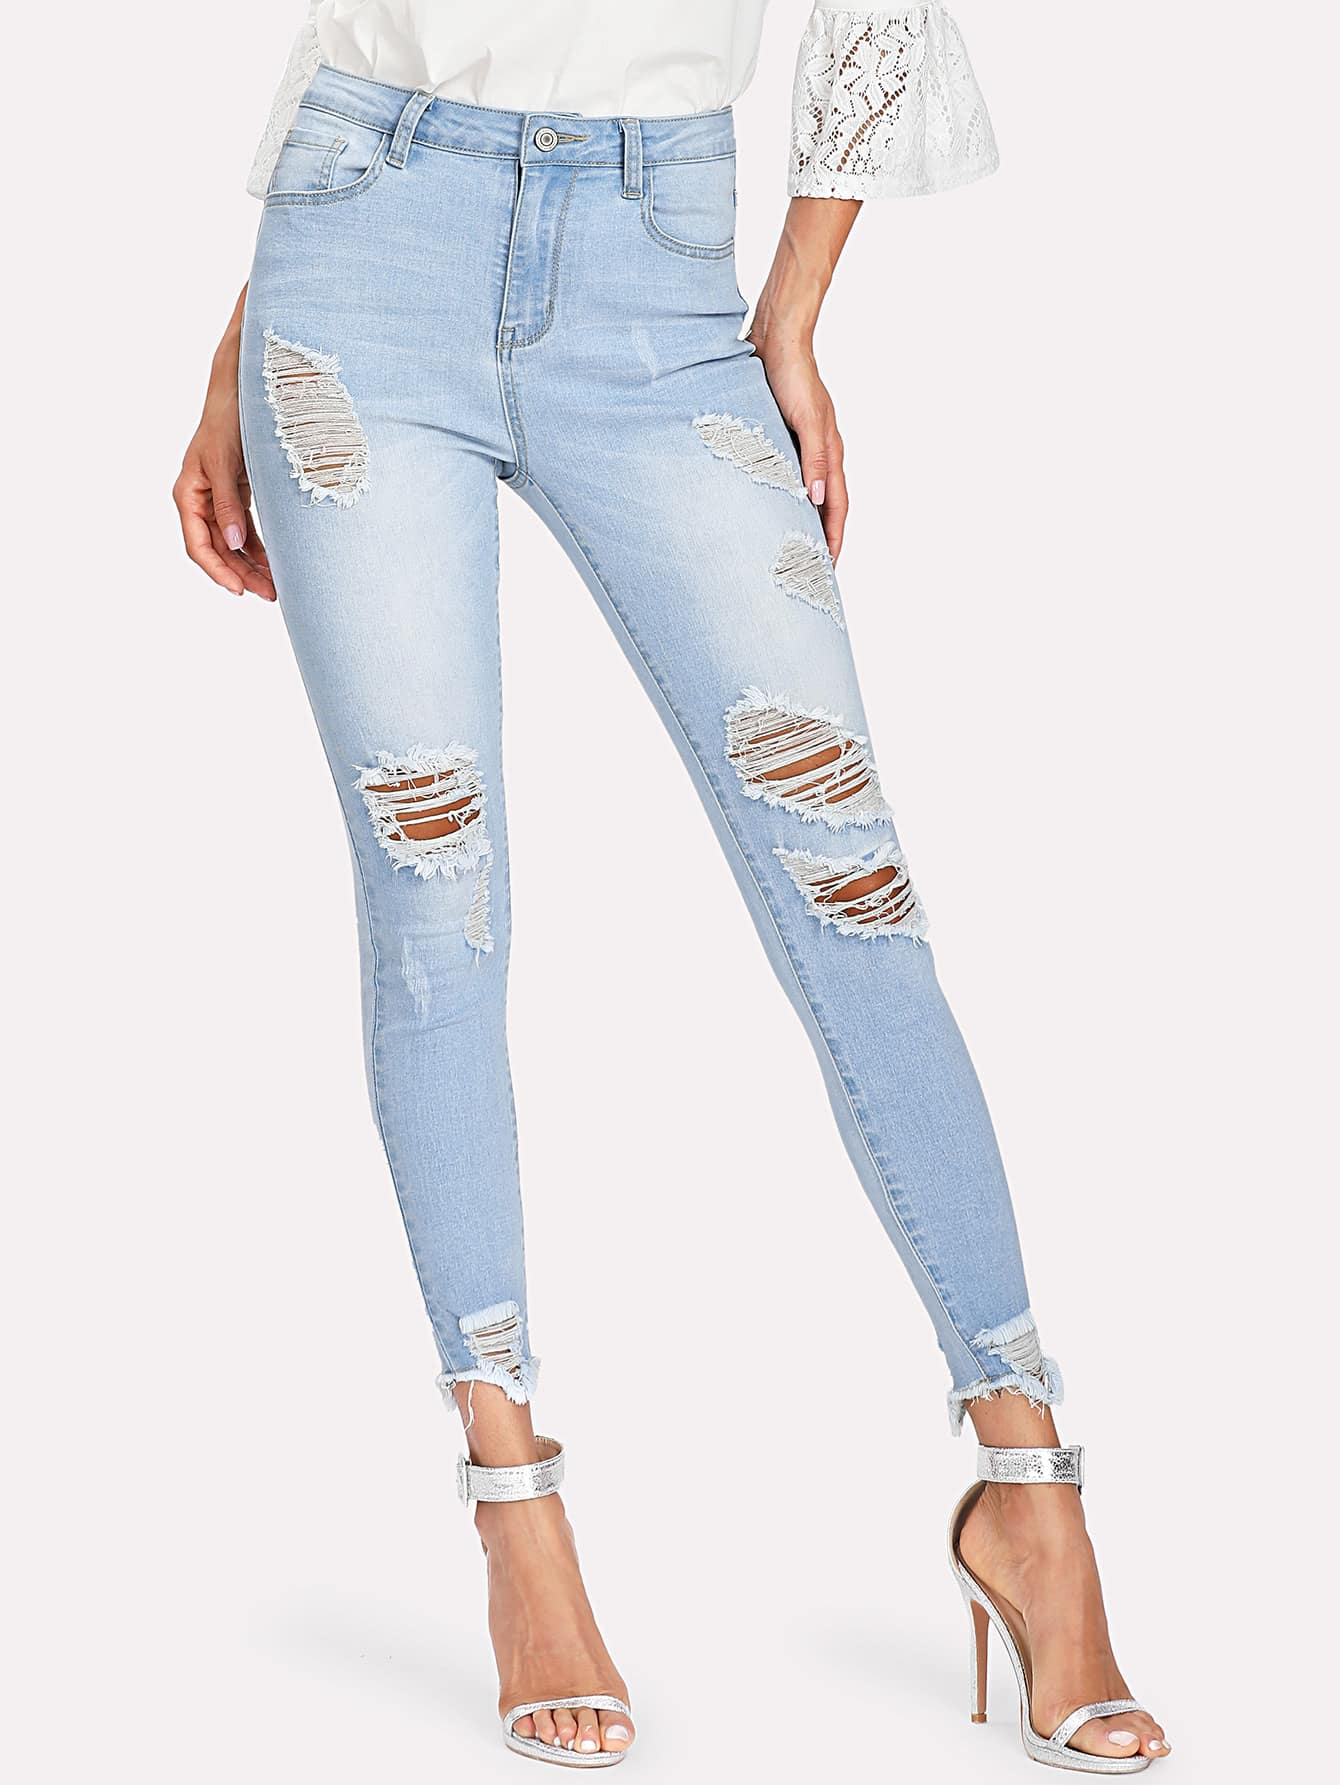 Bleach Wash Ripped Raw Hem Jeans lace up raw hem bleach wash hot pants